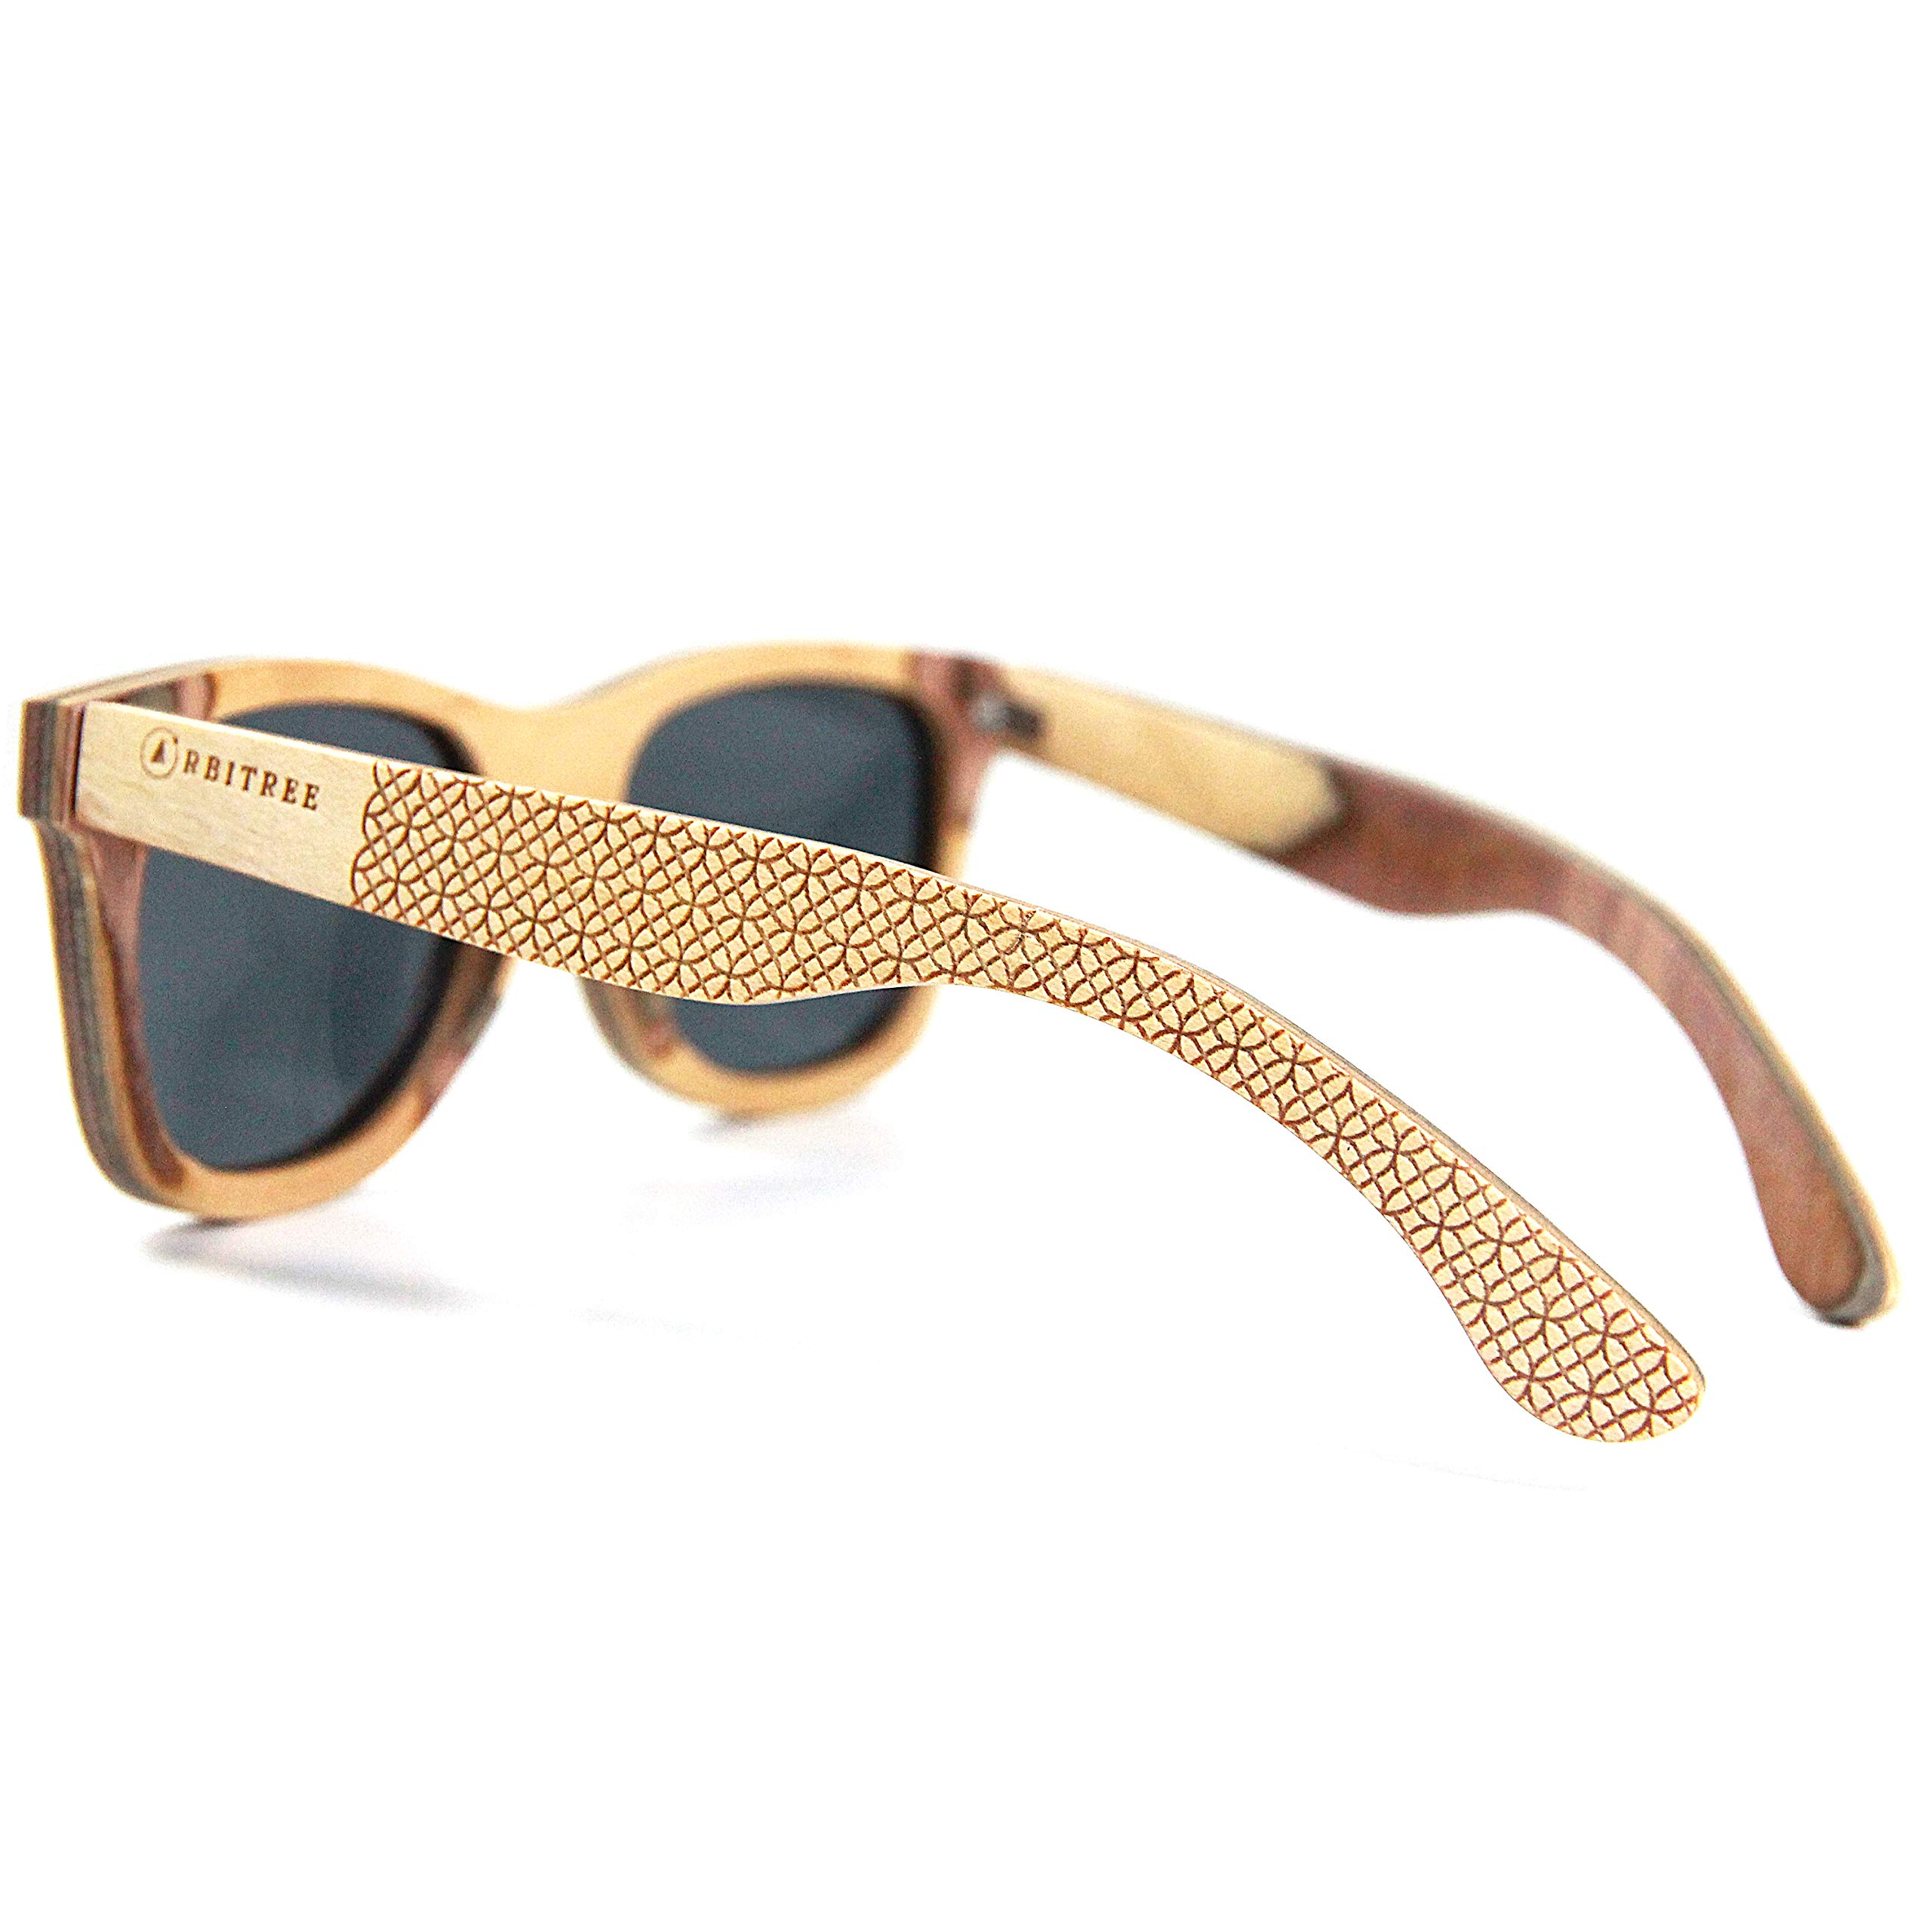 Orbitree Wood Sunglasses for Men and Women. 100% Maple Wood